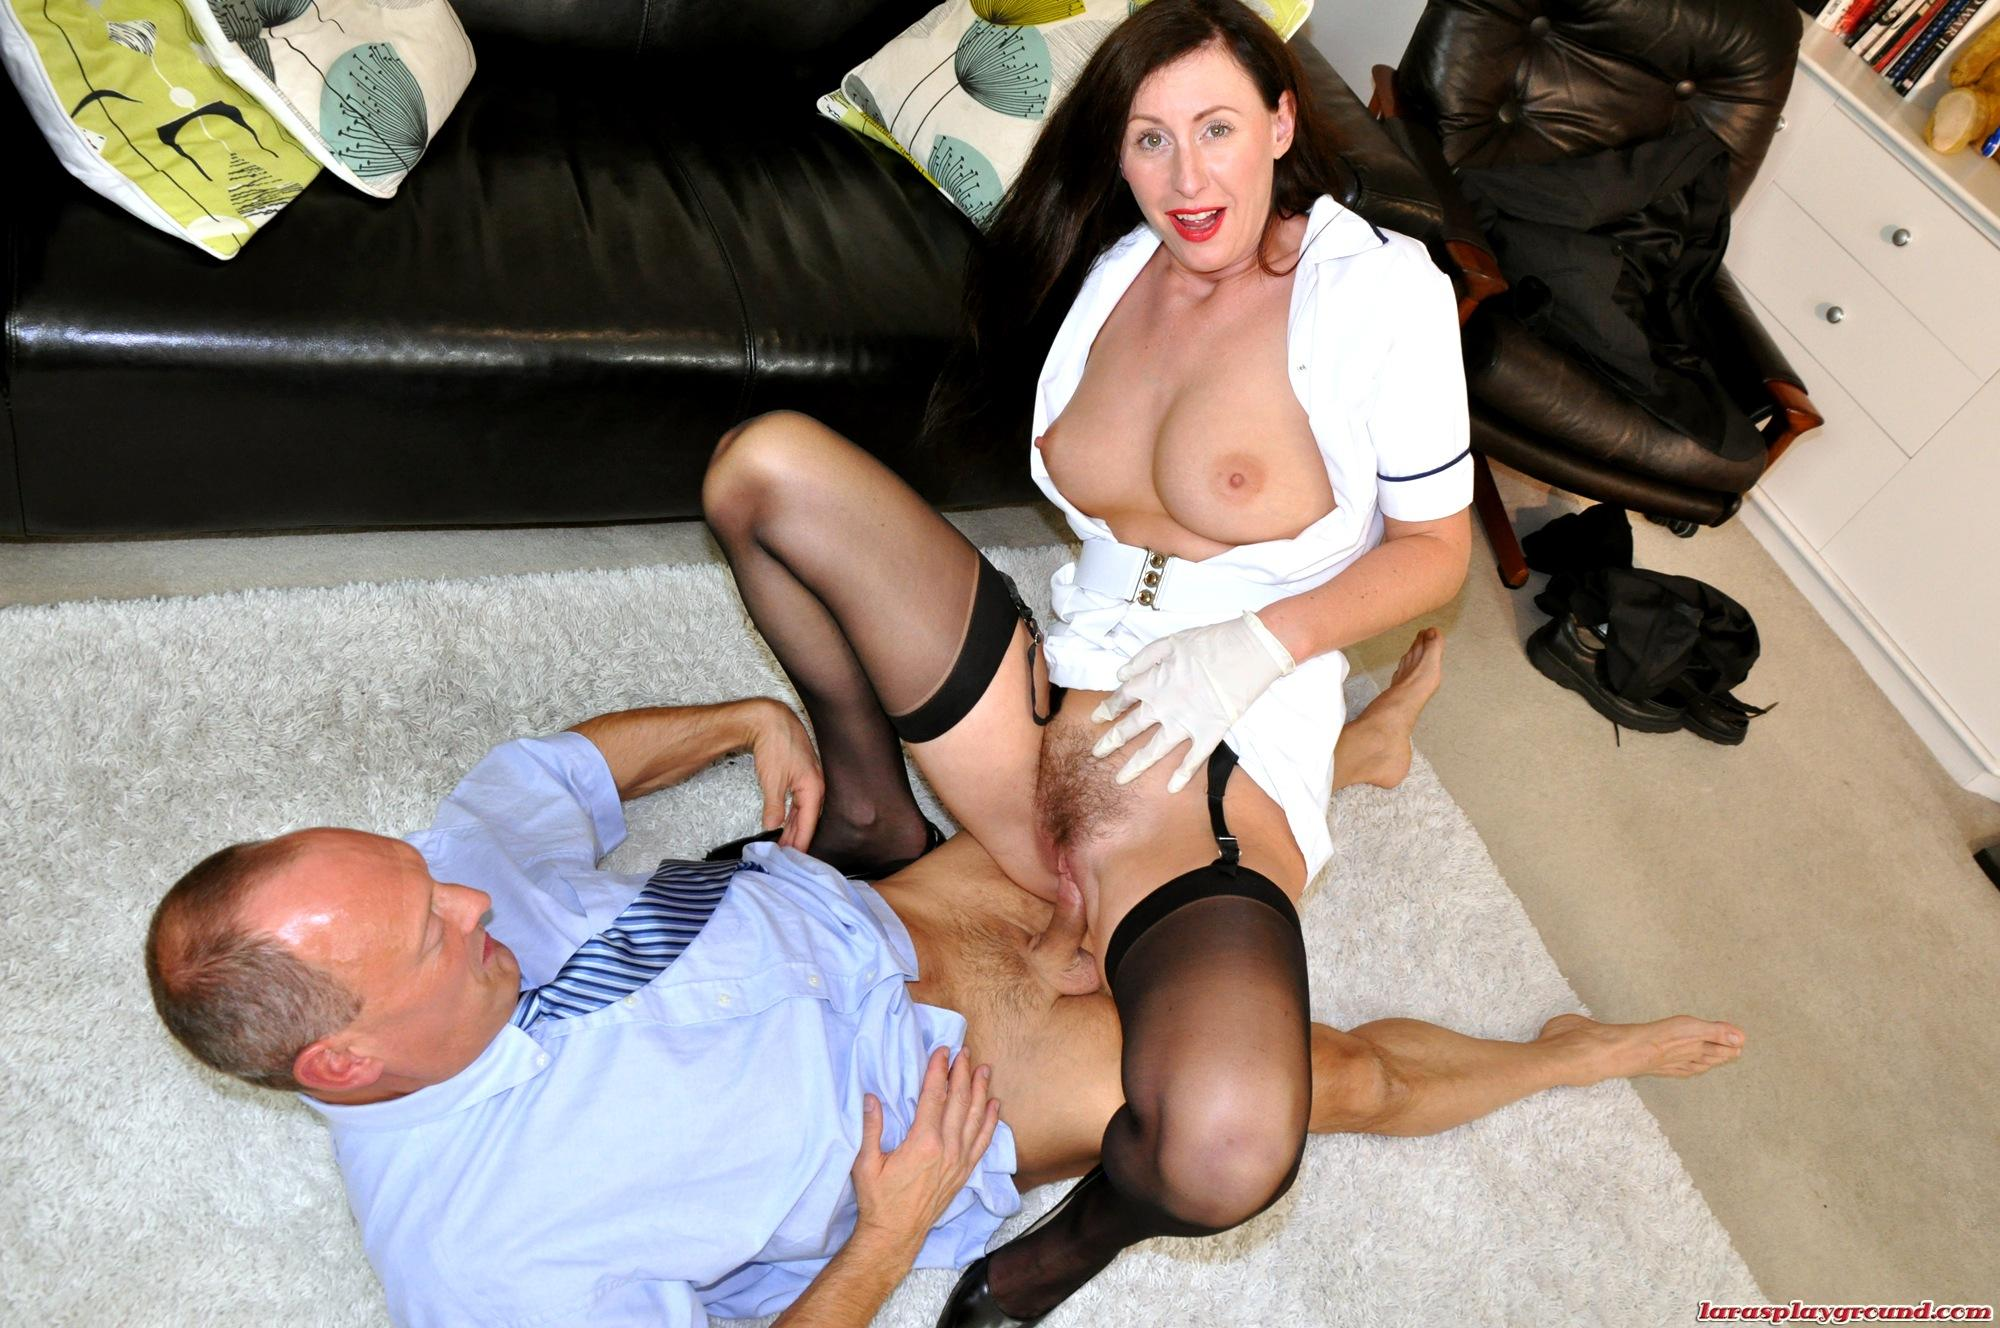 Lara west seduces old doctor philippe soine into fucking her - 3 part 8